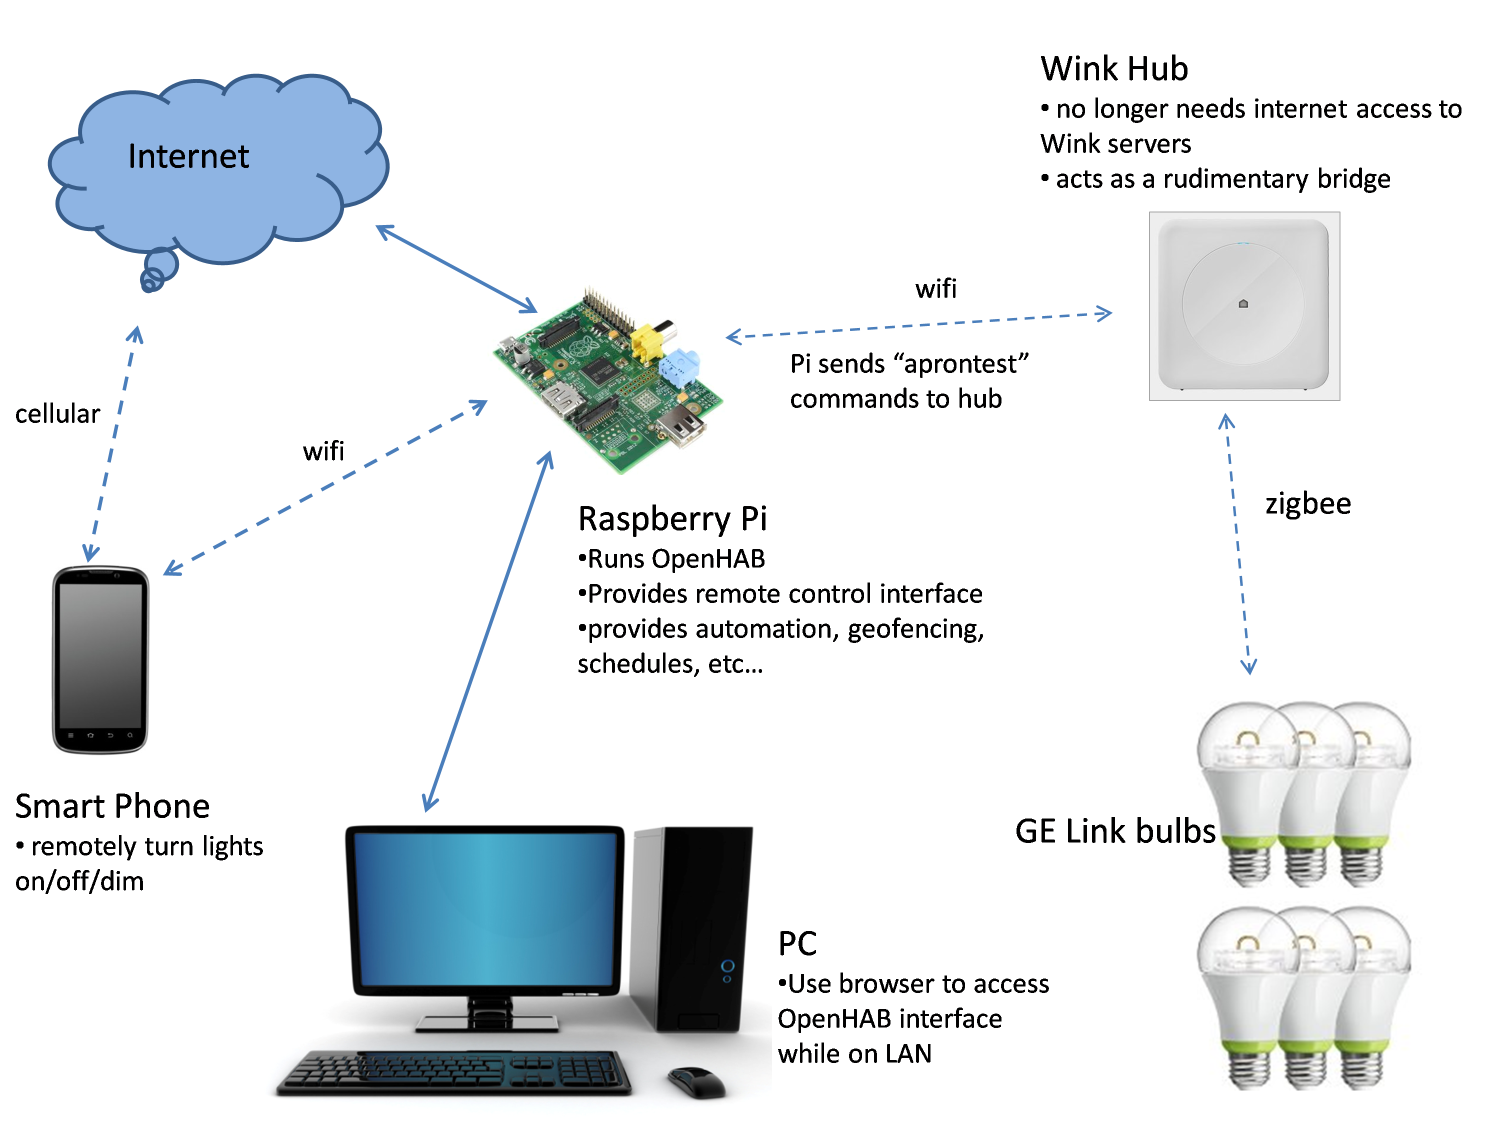 Wink Hub integration with OpenHAB for local control